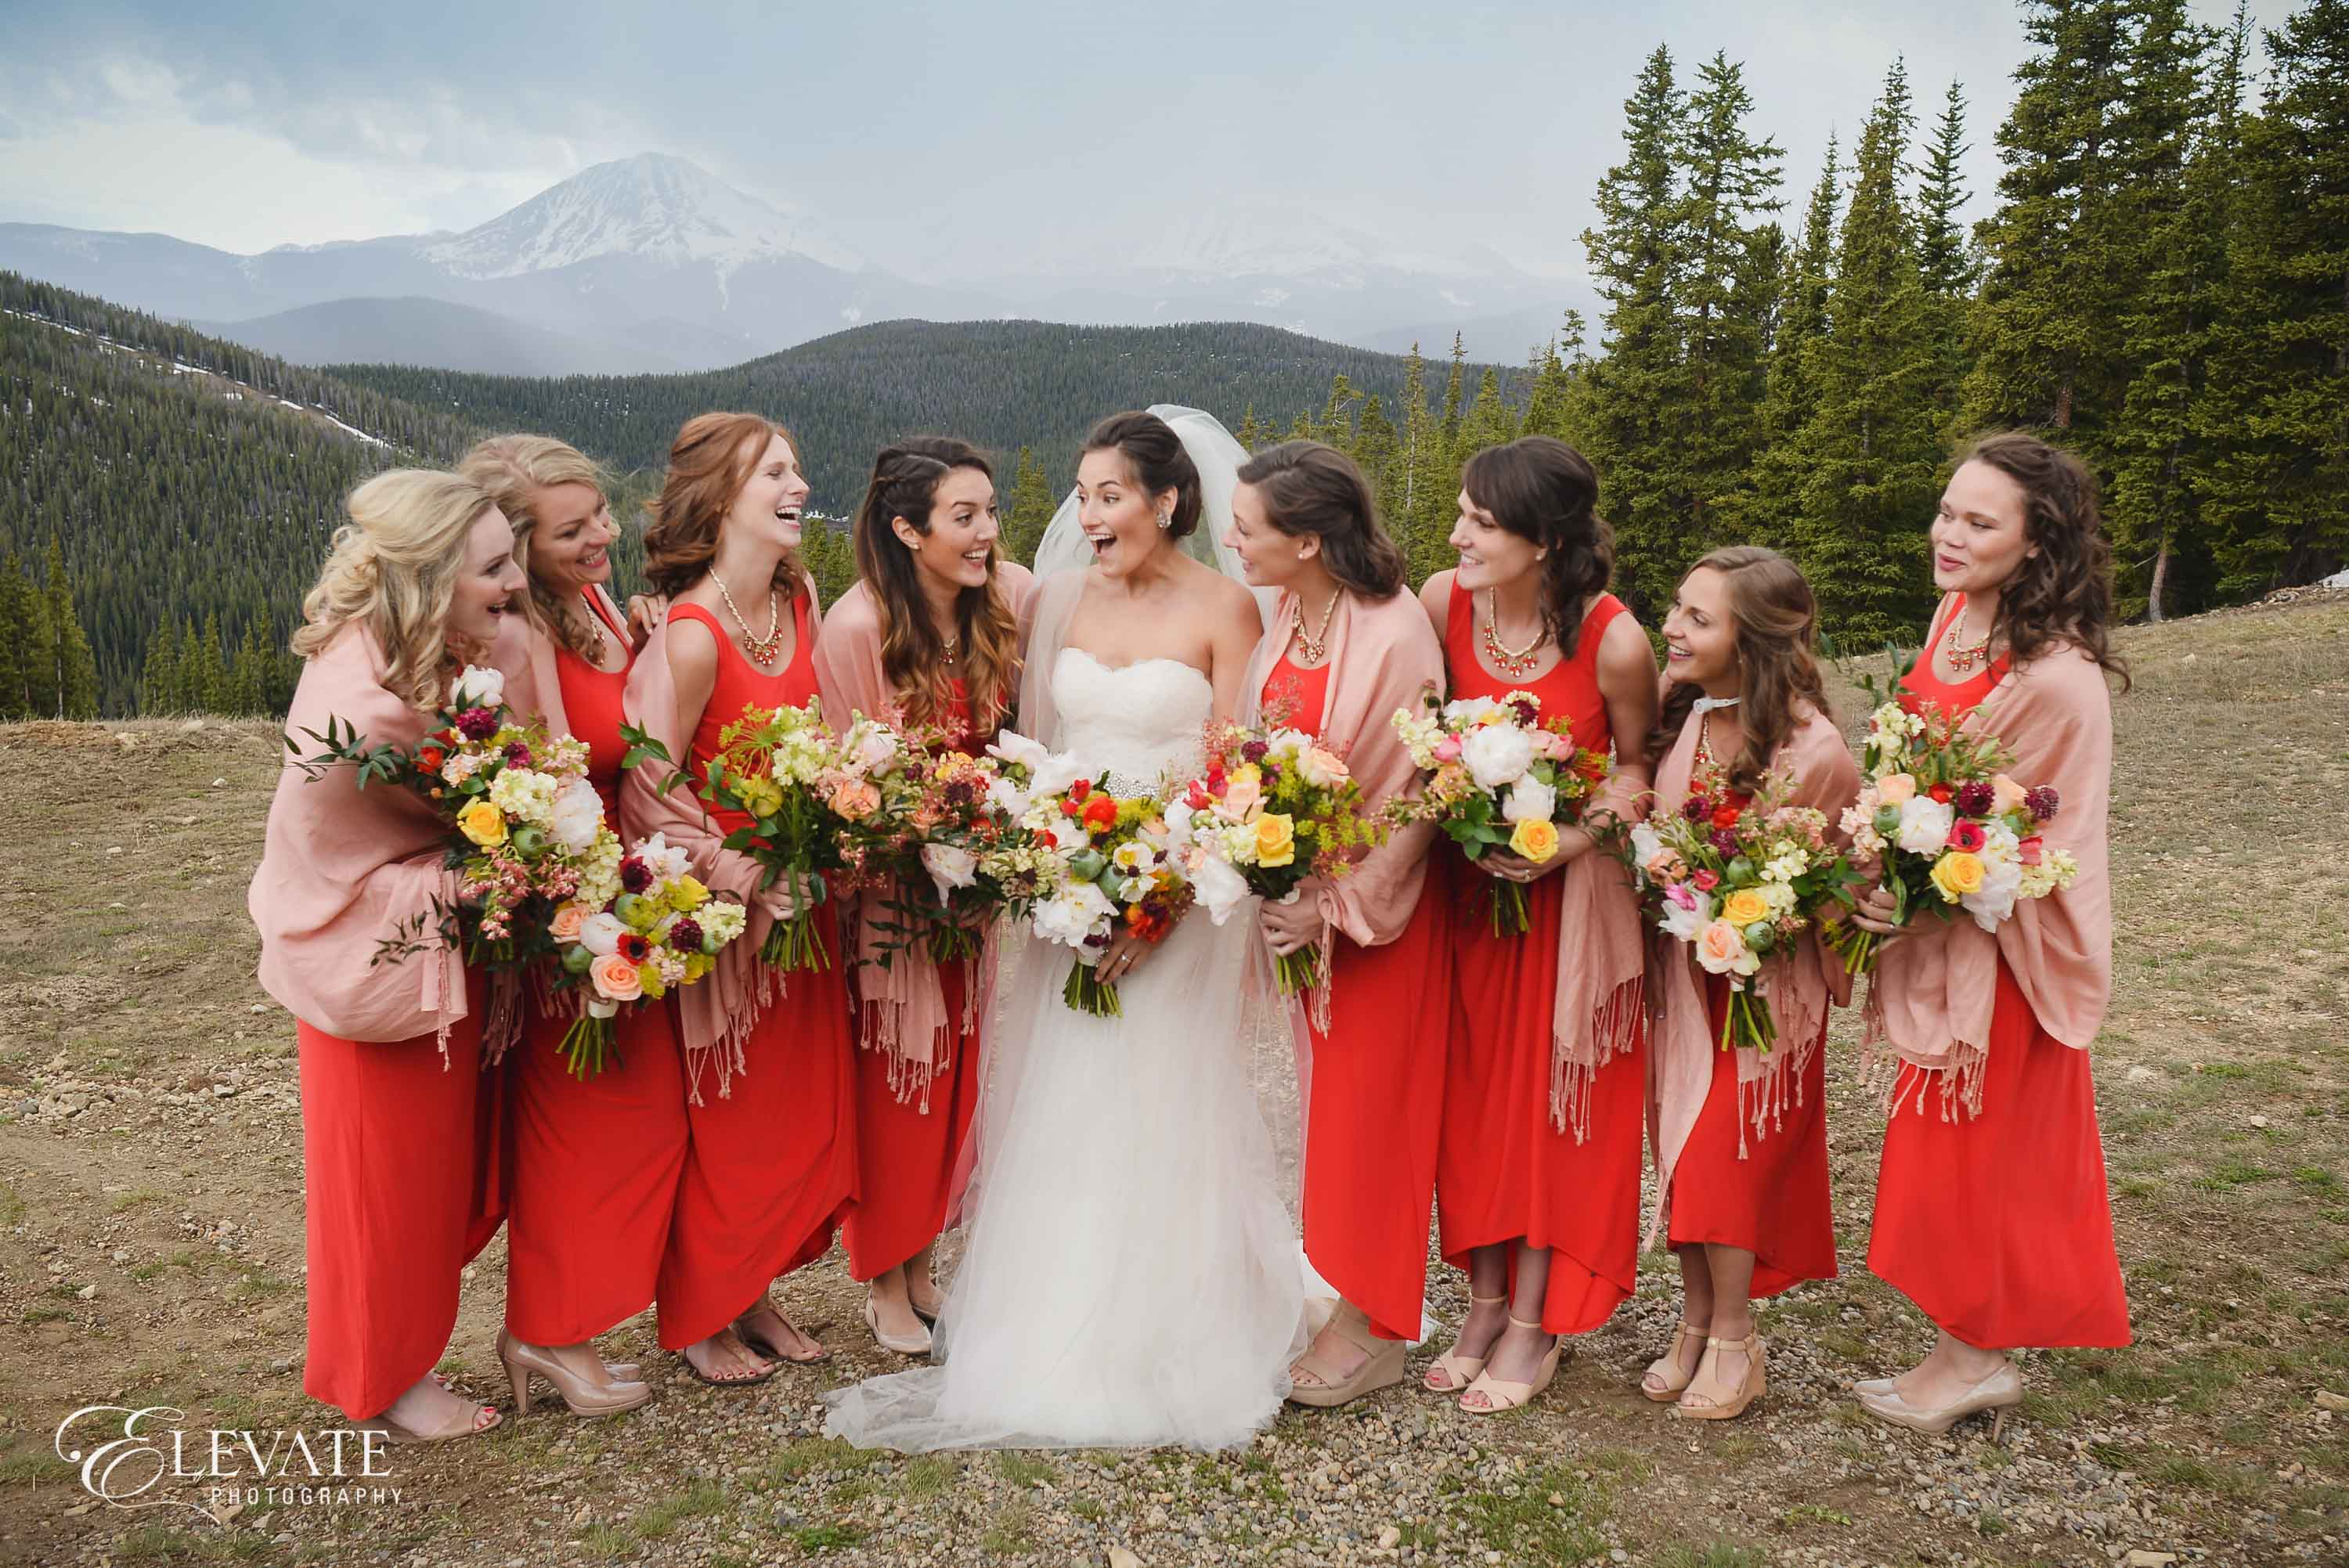 Bridesmaids red dresses